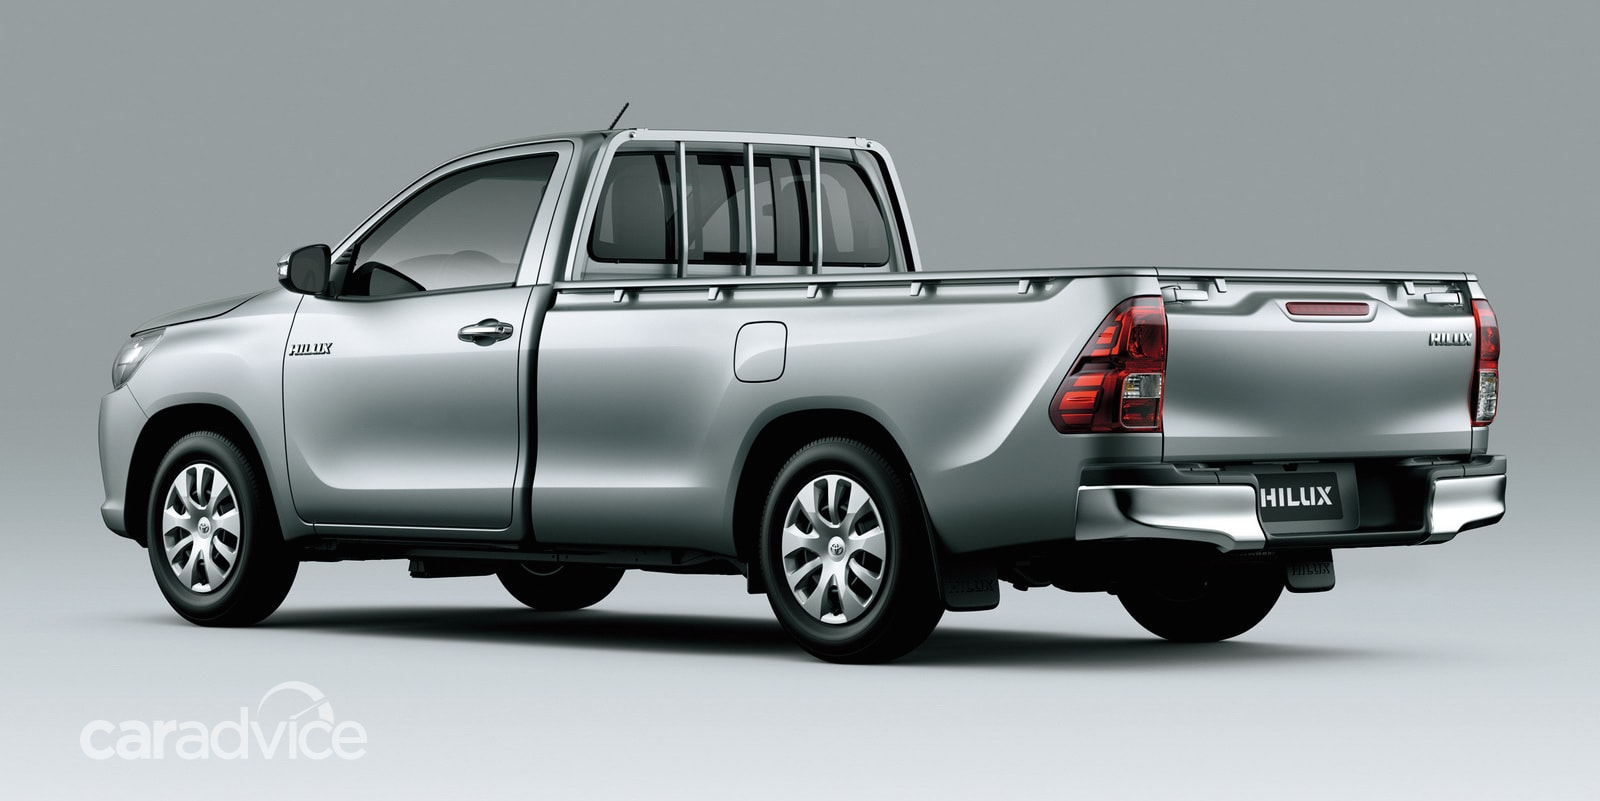 2016 toyota hilux interior  additional variants revealed in official images